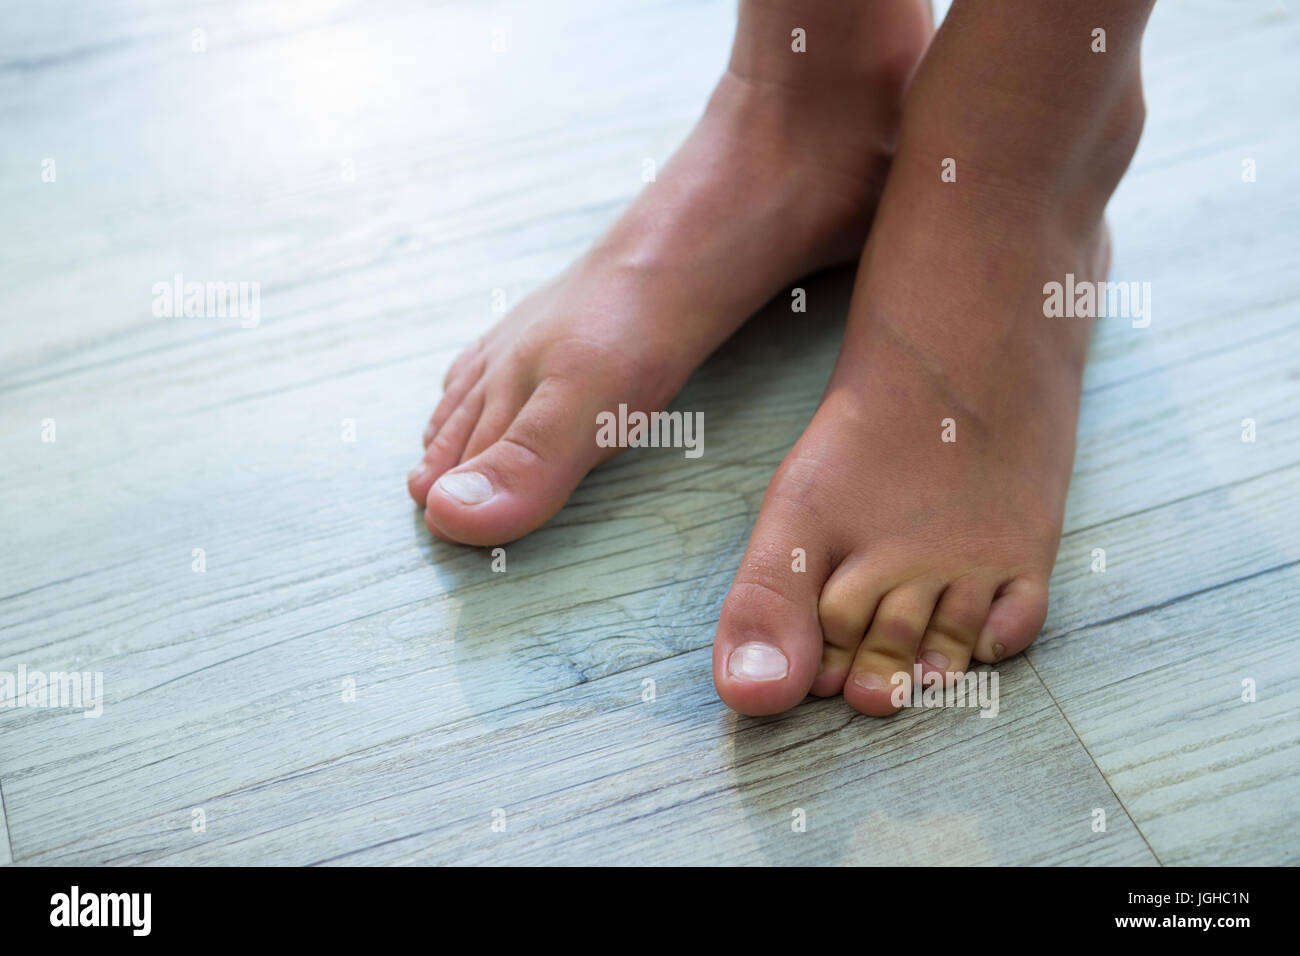 High angel view of girl standing on floor at home - Stock Image